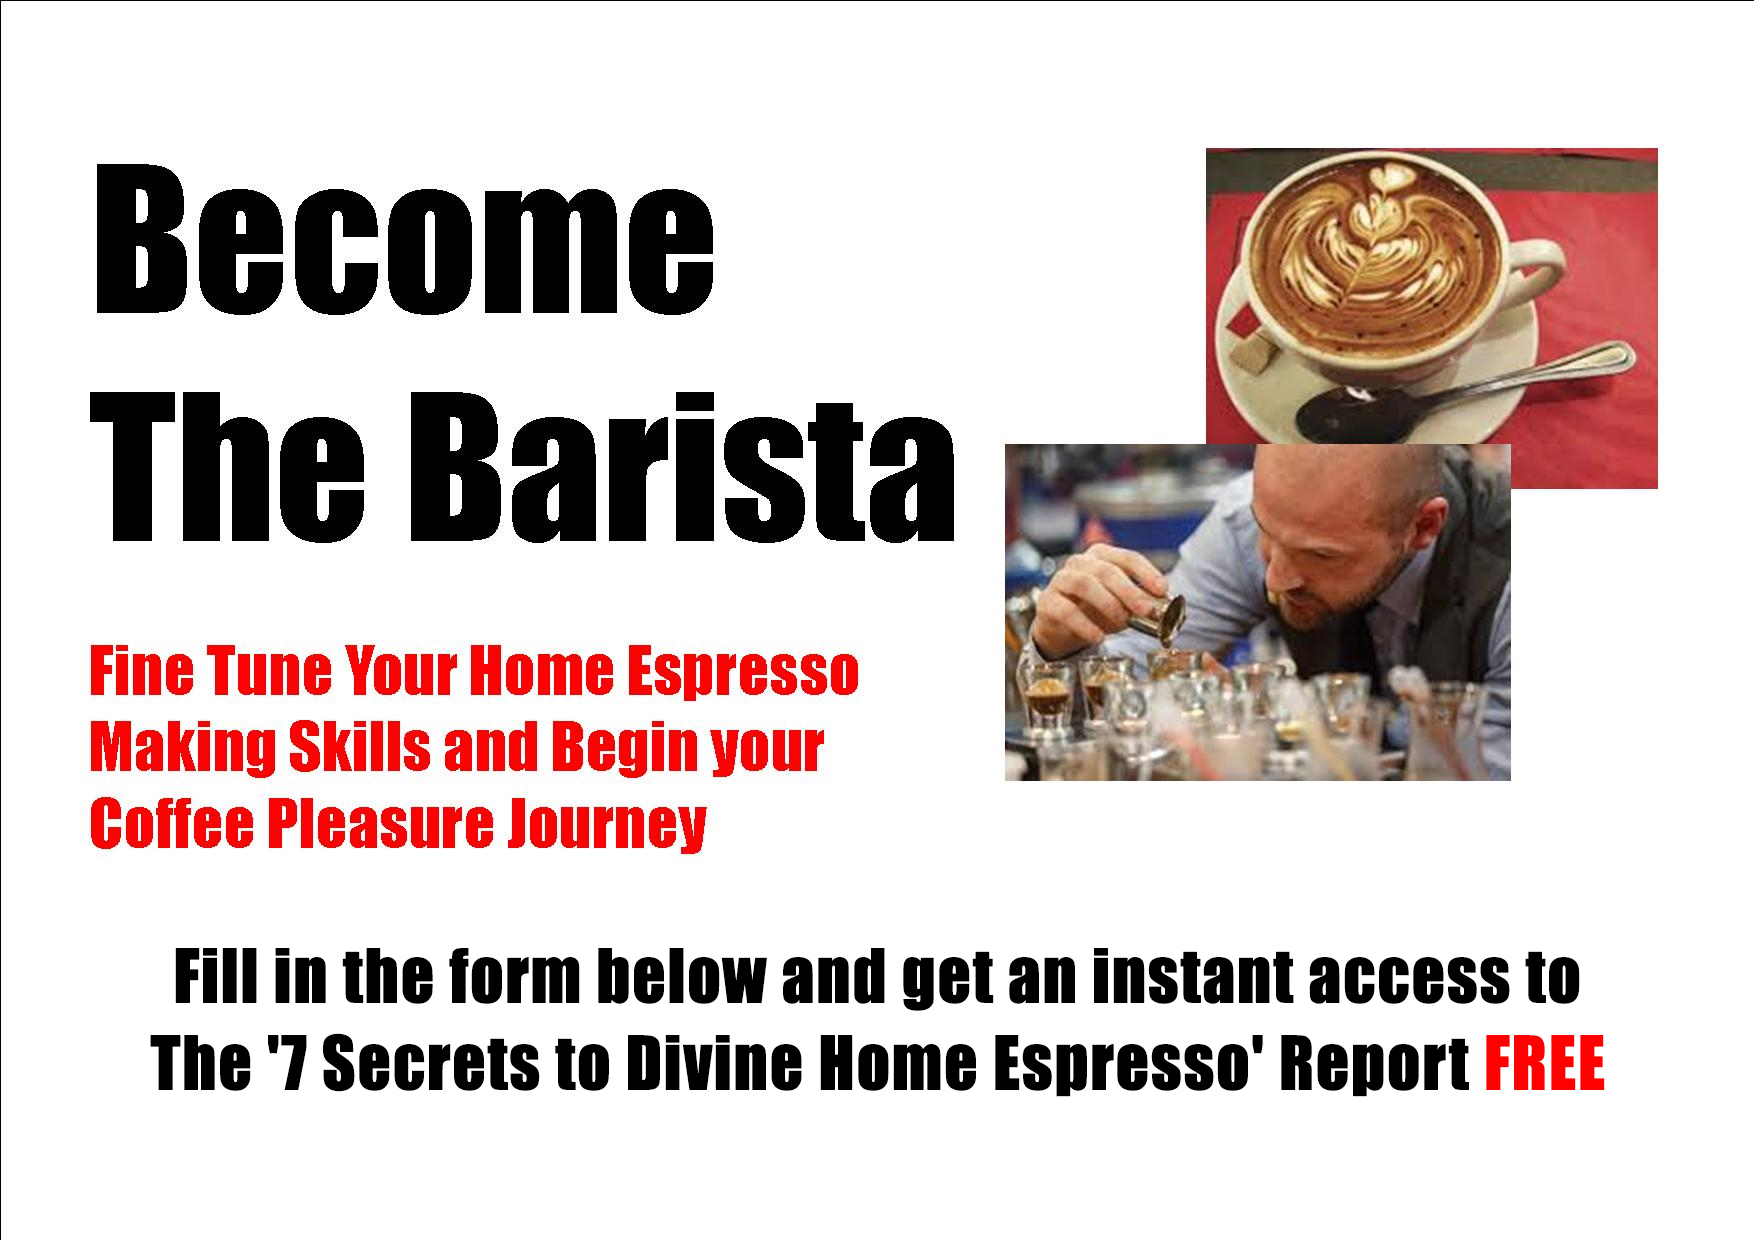 Fill in the form below and get an instant access to the '7 Secrets to Divine Home Espresso' Report FREE